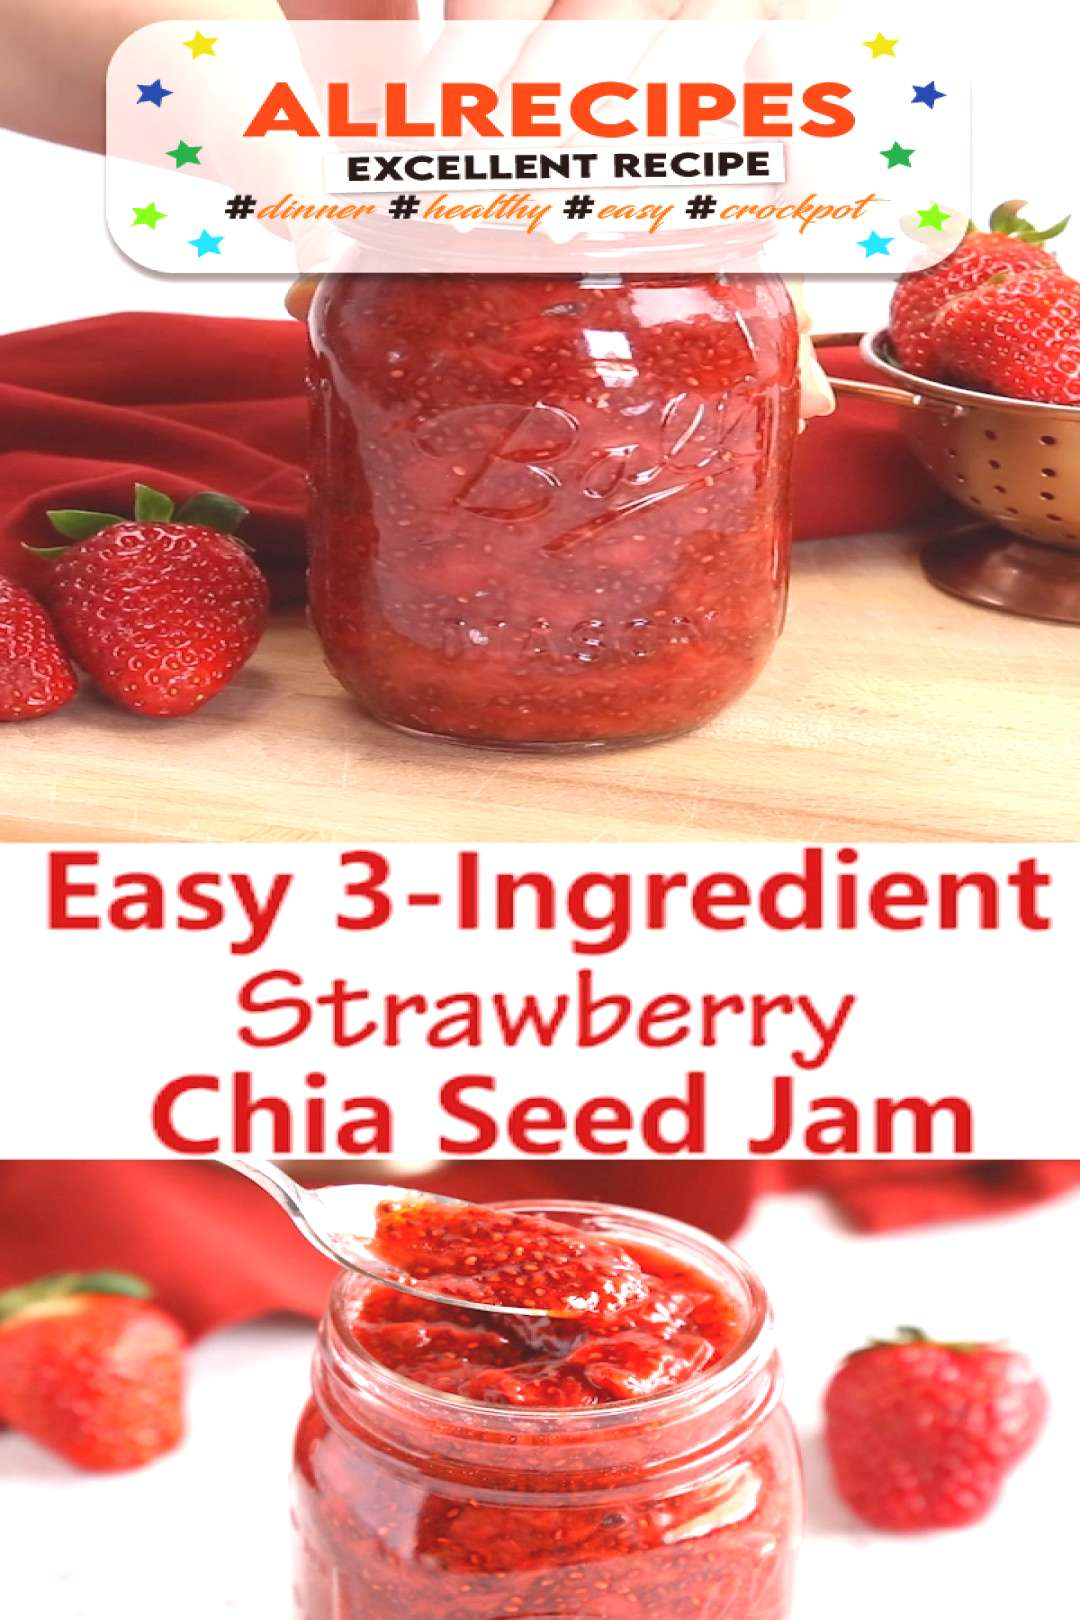 Easy 3-Ingredient Strawberry Chia Seed Jam - - This Easy 3-Ingredient Chia Seed Strawberry Jam is t